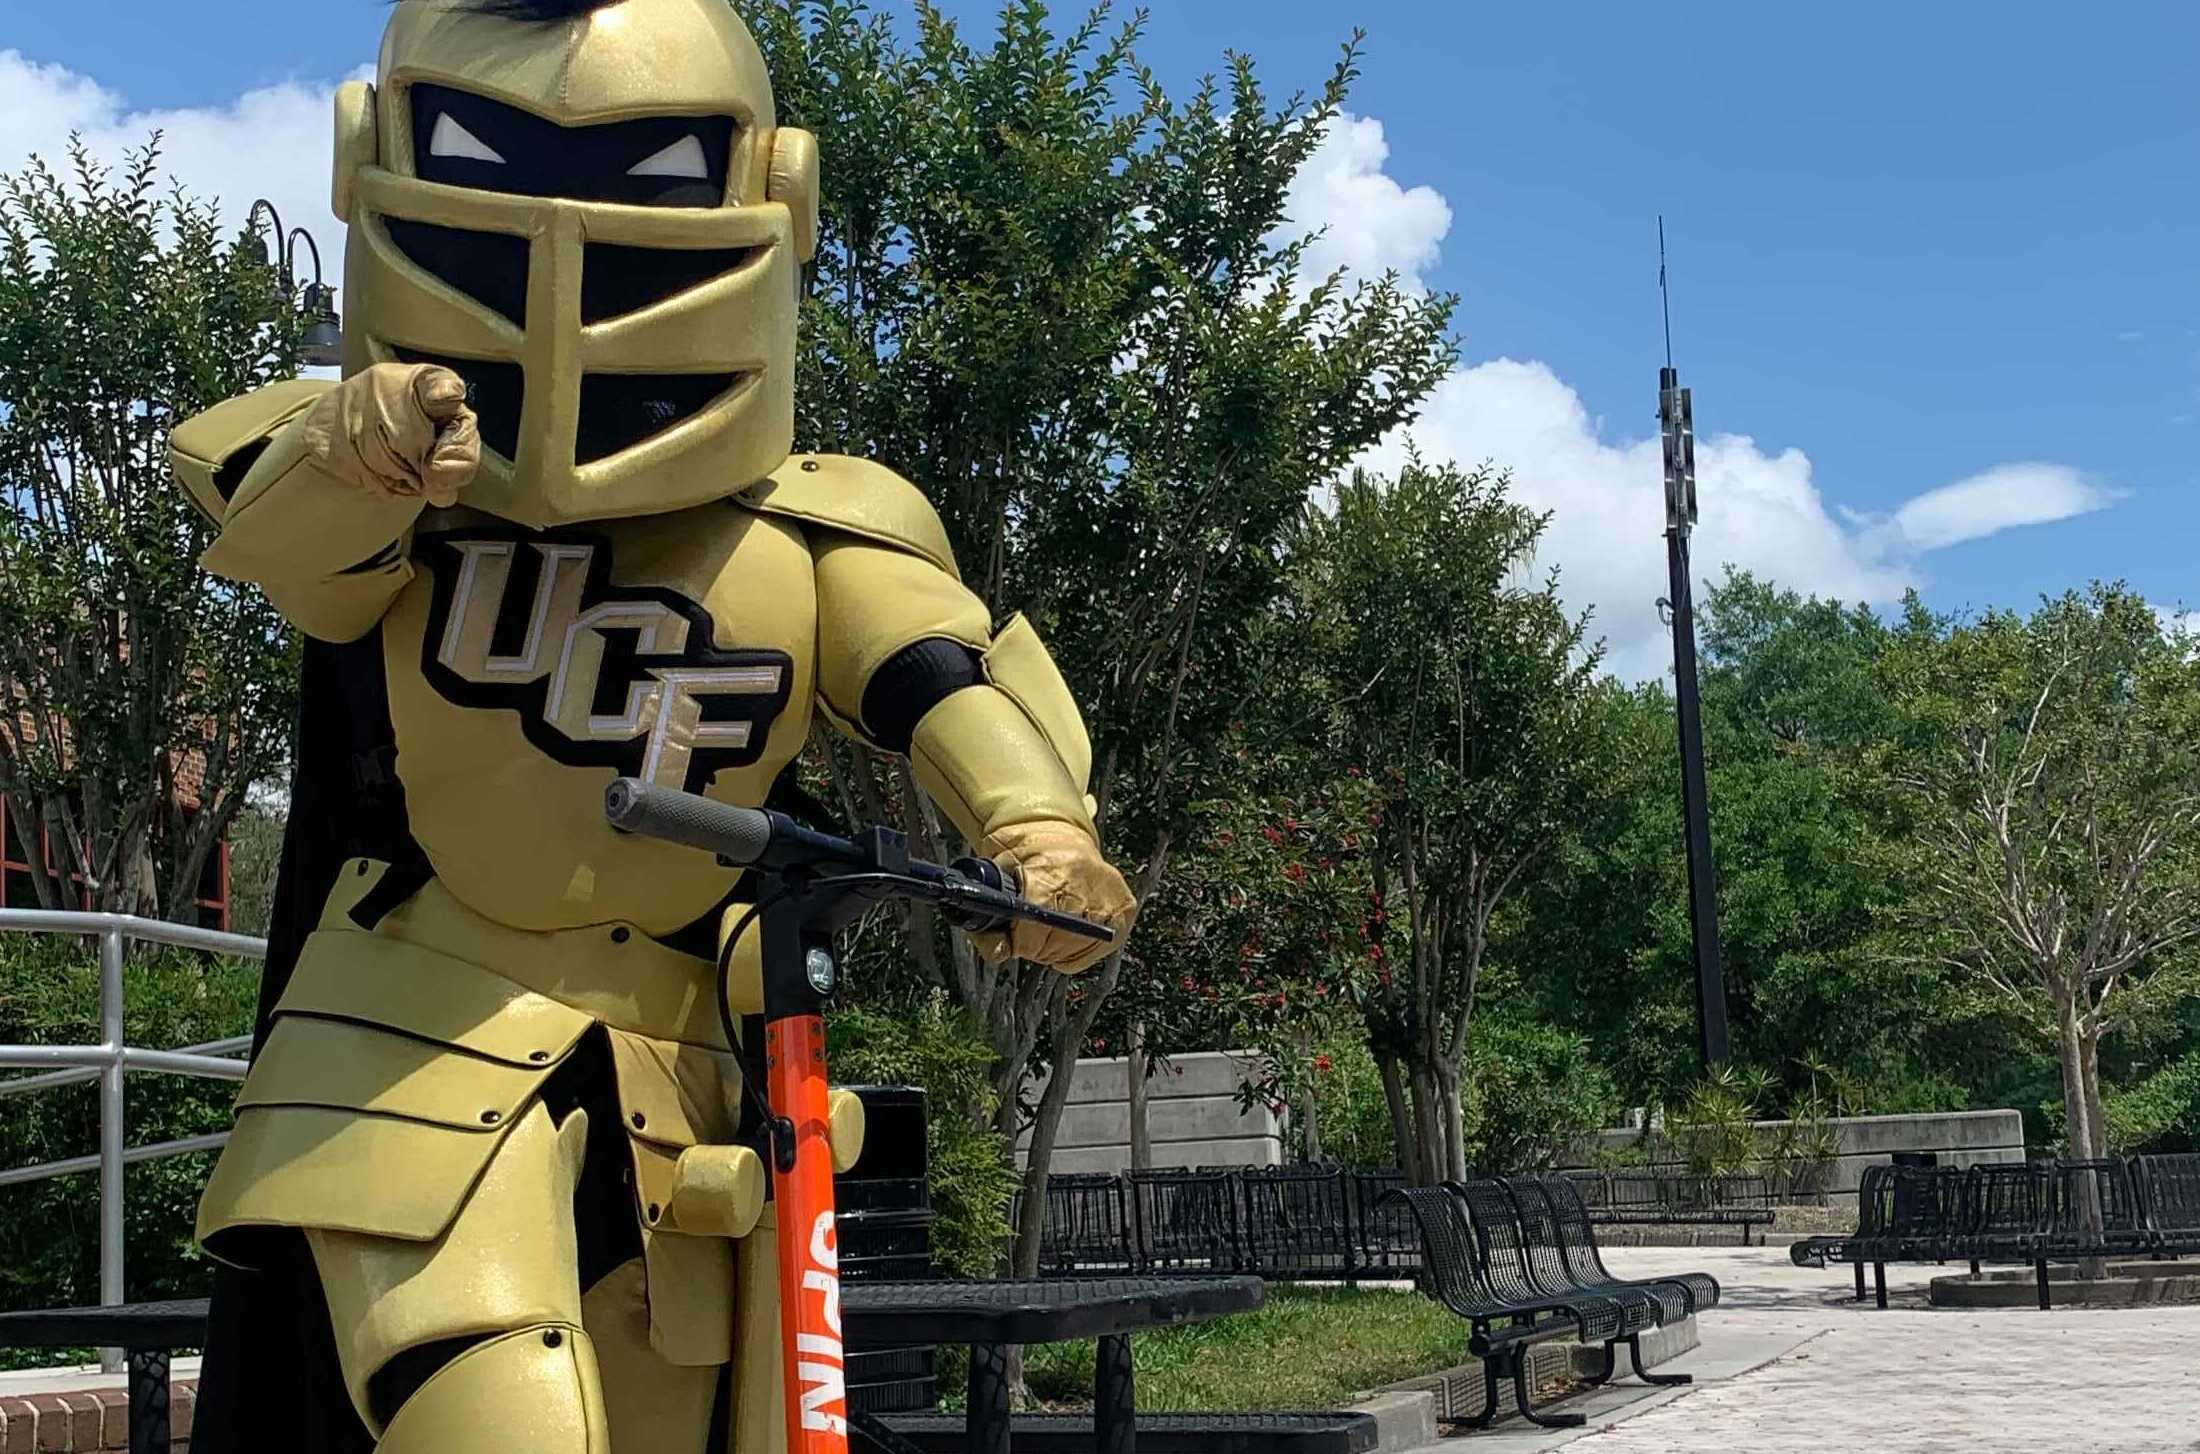 A person dressed as a knight mascot for University of Central Florida stands on a scooter, pointing toward the camera.